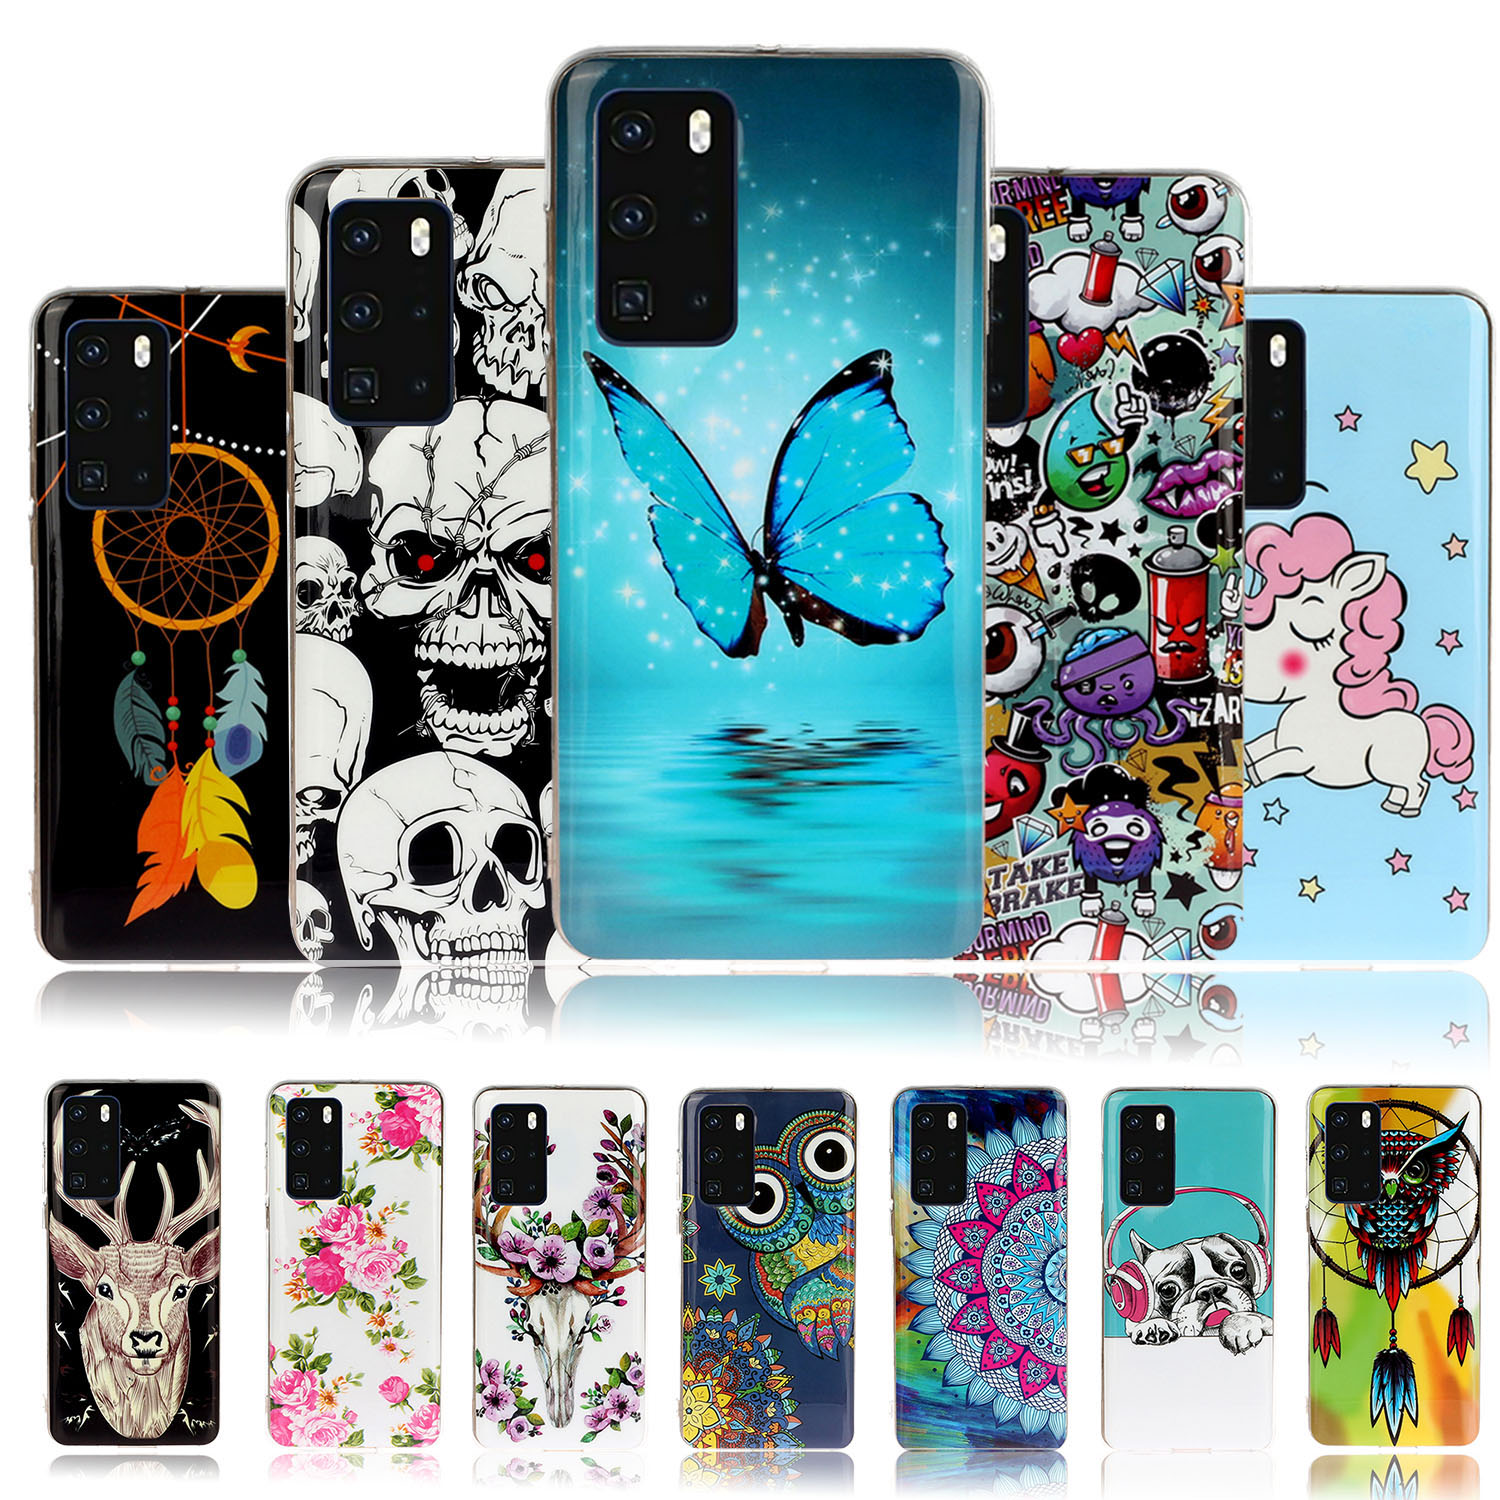 High Heels Protective Phone Cases For Samsung A50 Galaxy A50S A30S A40 A60 A90 A70 A70E A8S A41 A80 Soft TPU Protector Case image